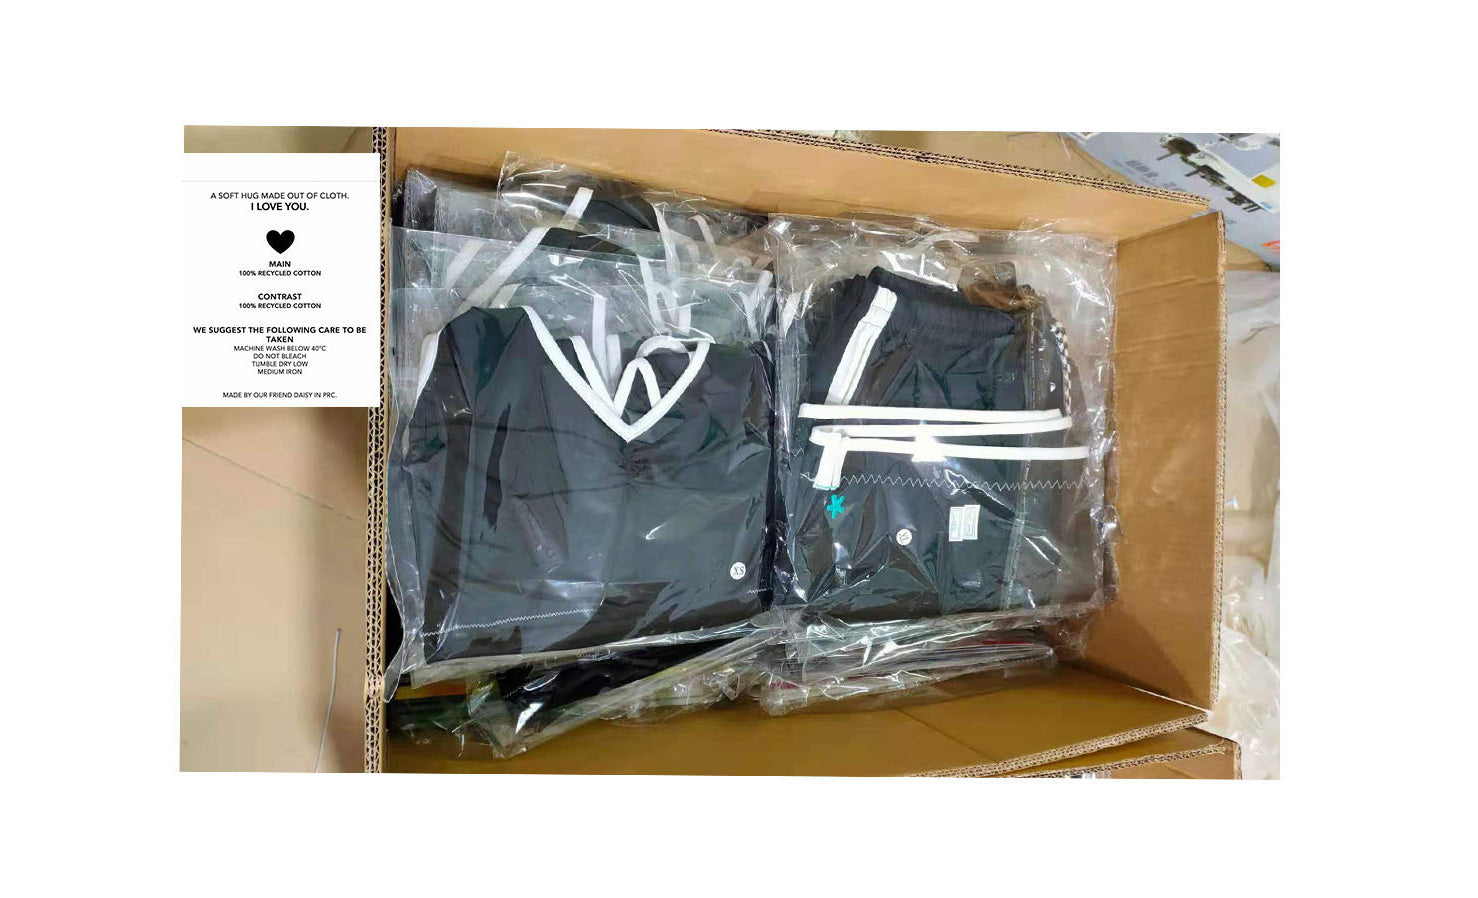 shorts folded in boxes ready for shipment